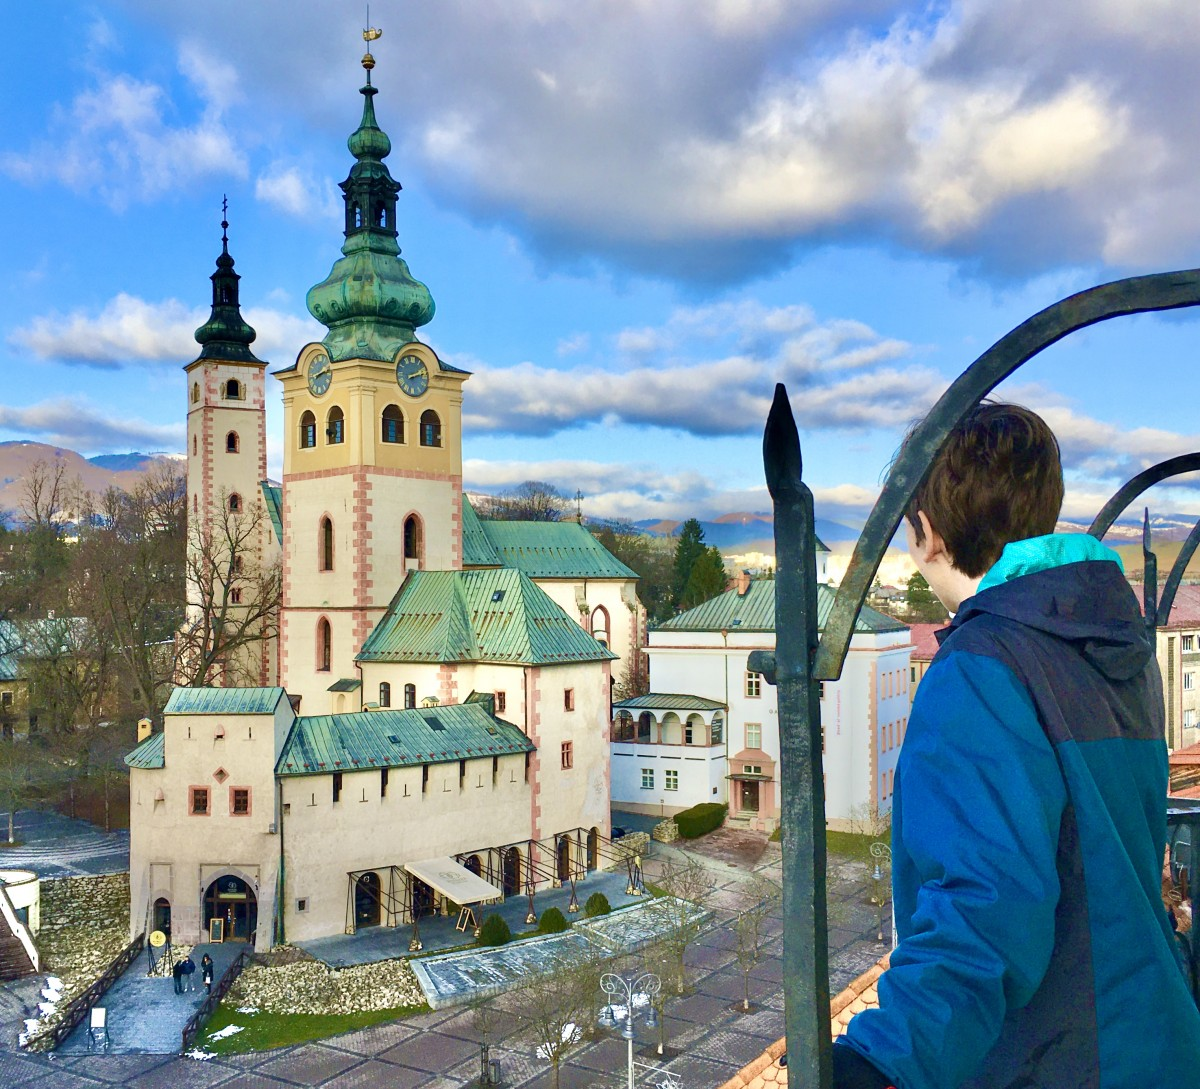 boy in a clock tower overlooking the Banska Bystrica castle